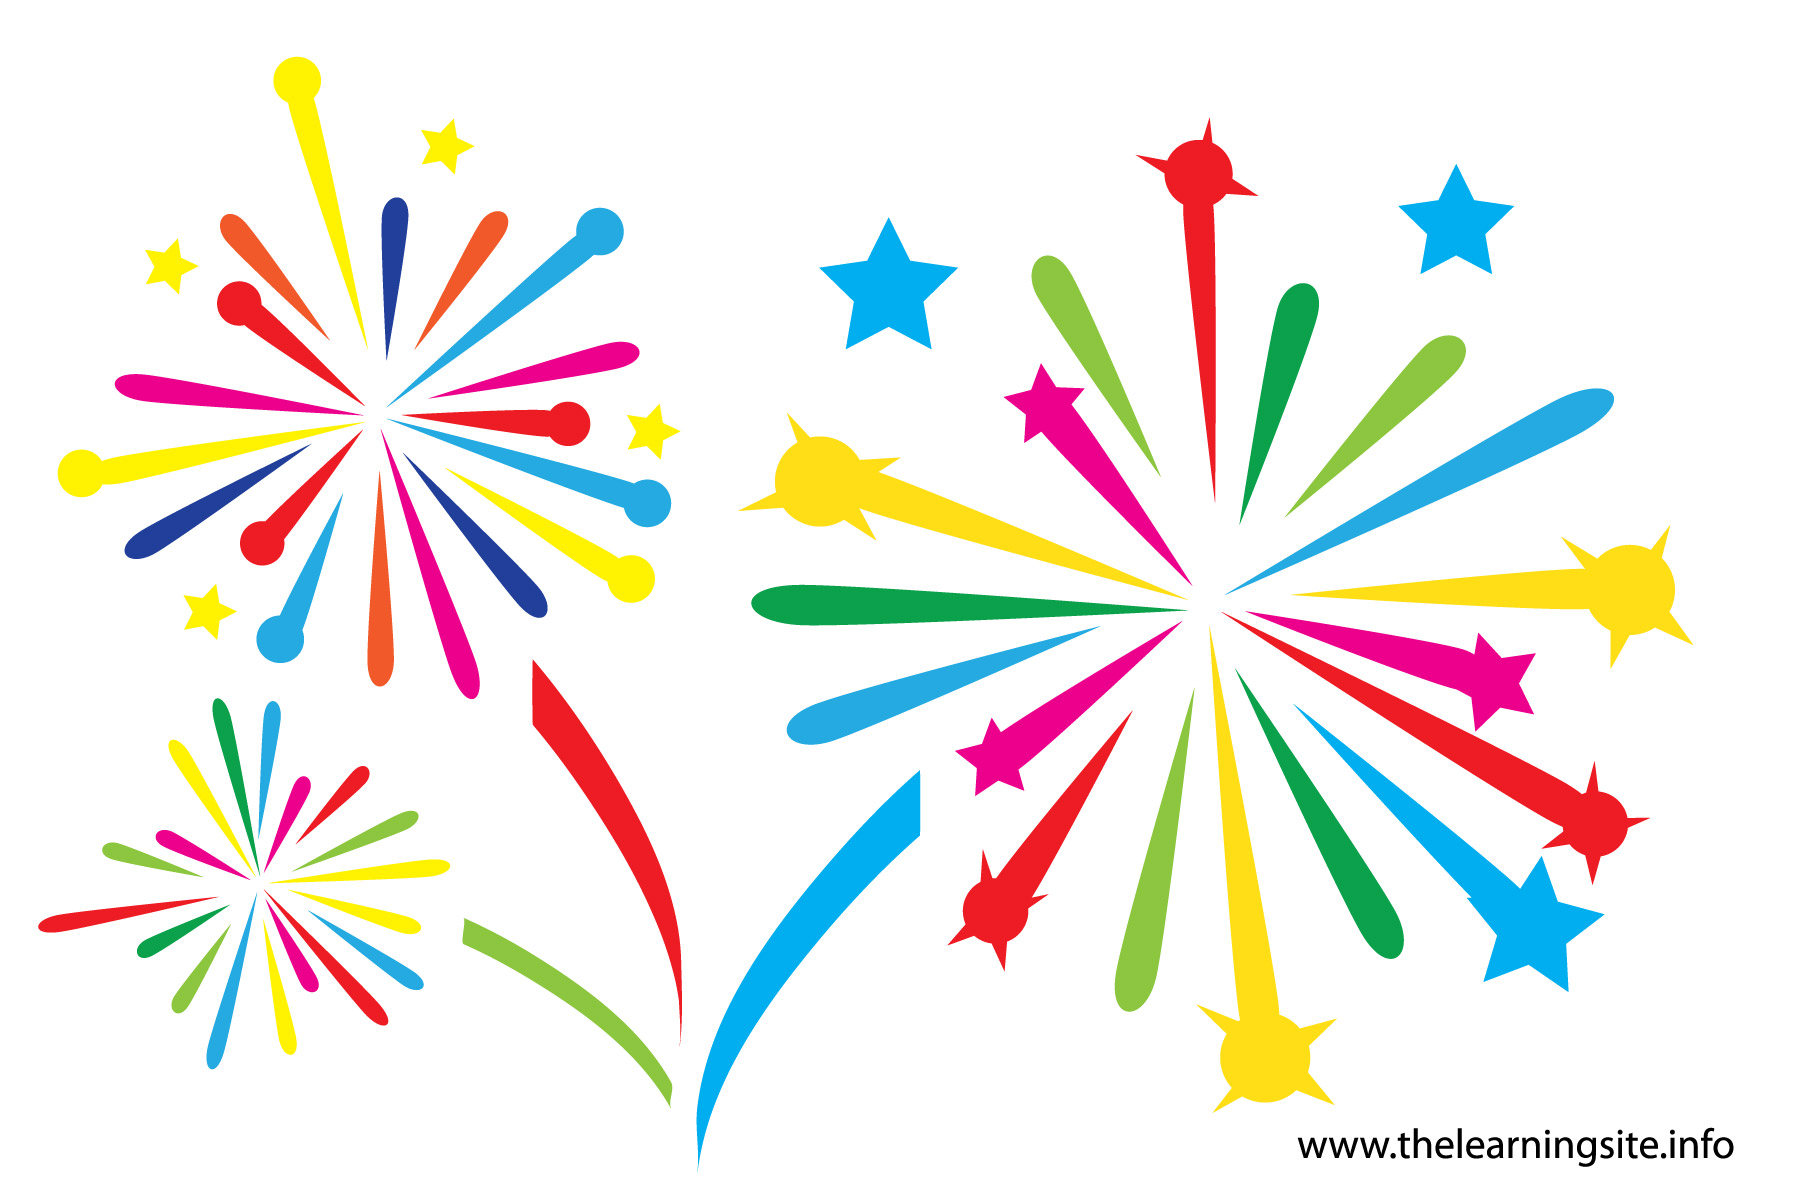 Cartoon fireworks clipart stock Free Animated Fireworks Cliparts, Download Free Clip Art, Free Clip ... stock